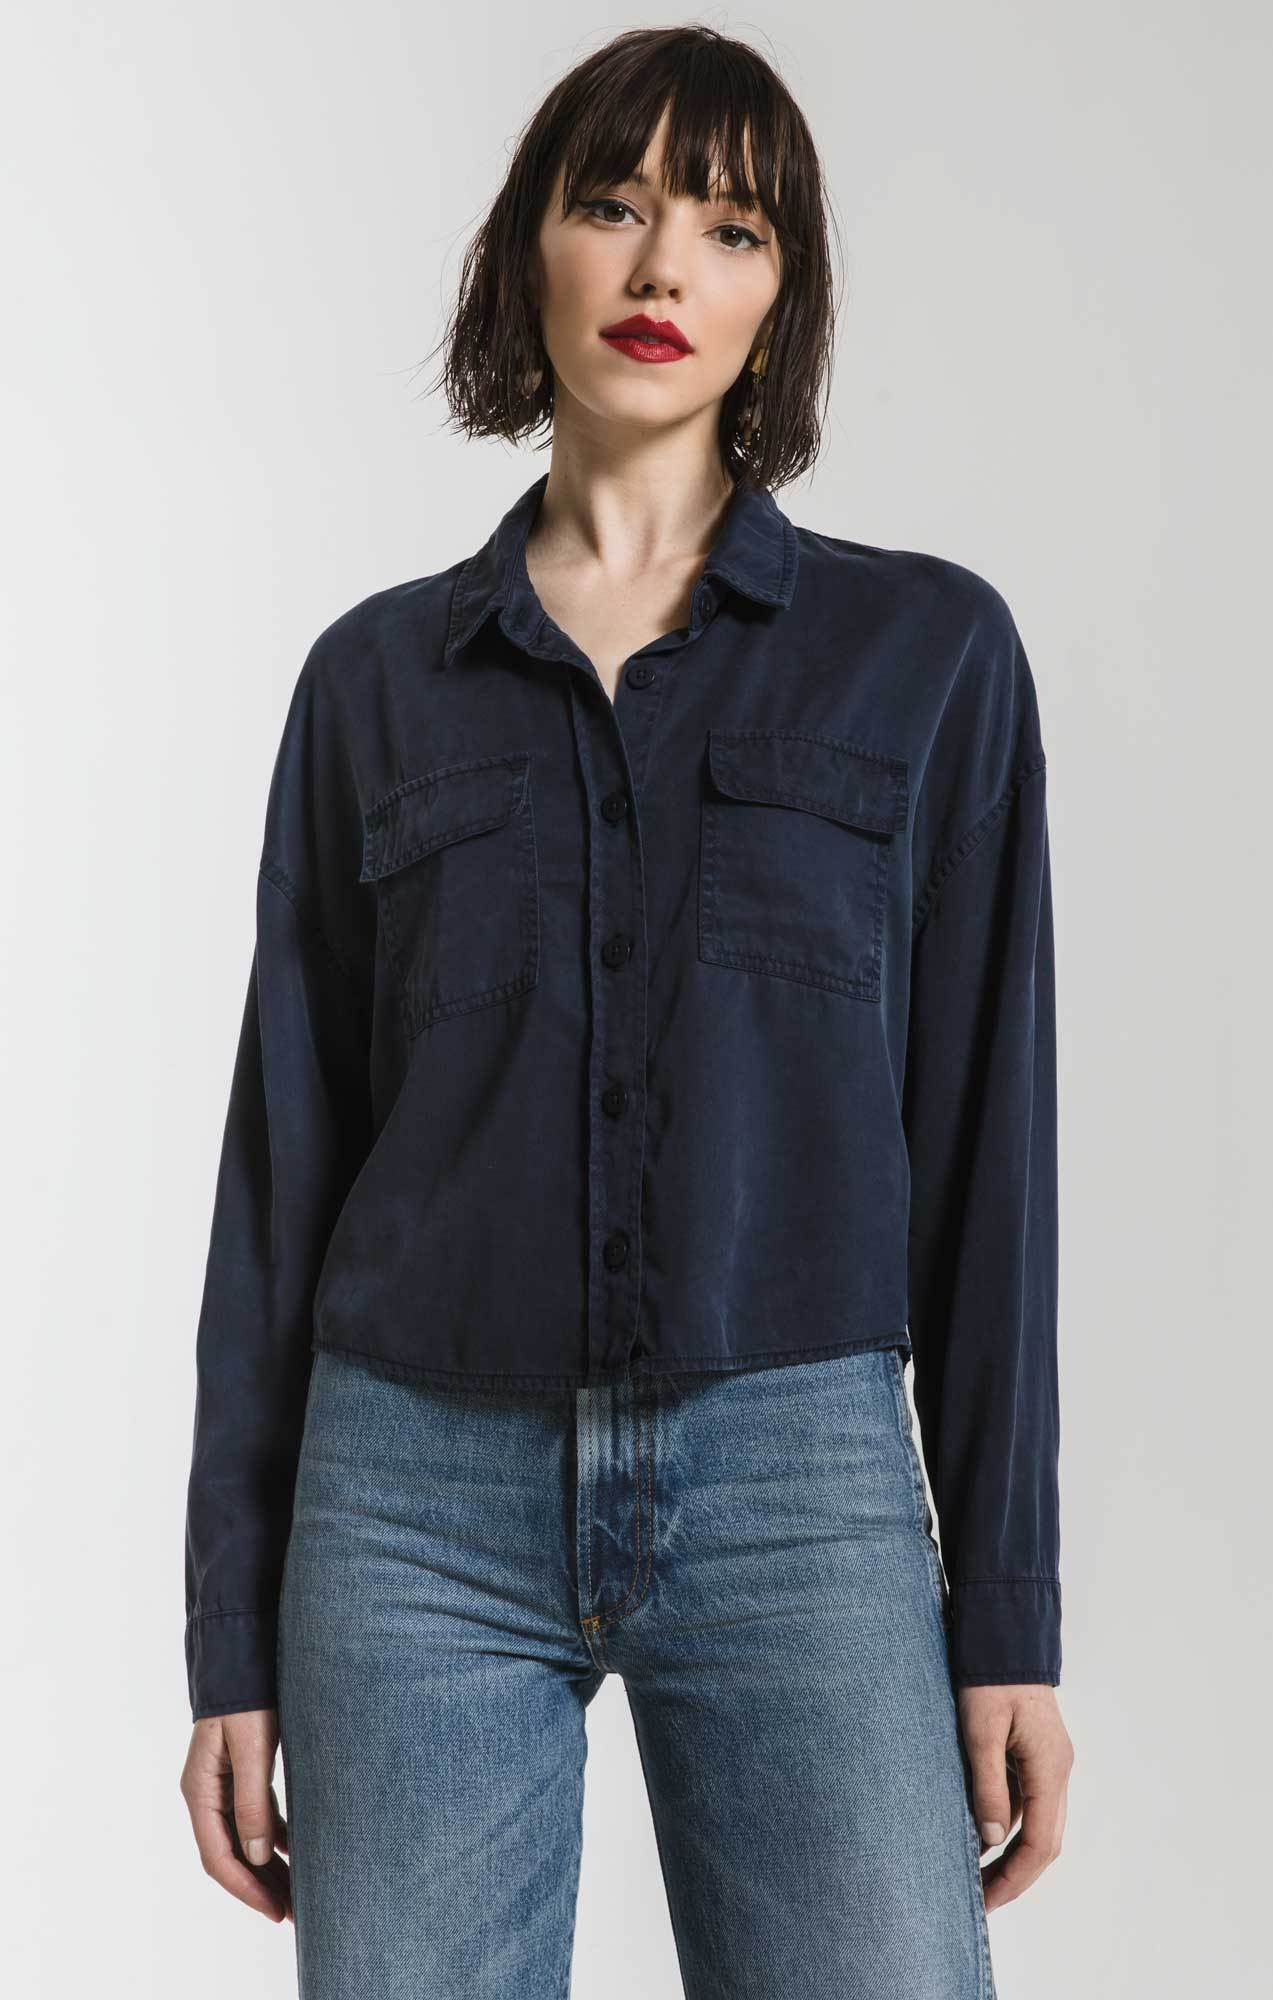 Tops Amal Cropped Button-Up Shirt By Rag Poets Navy Blazer